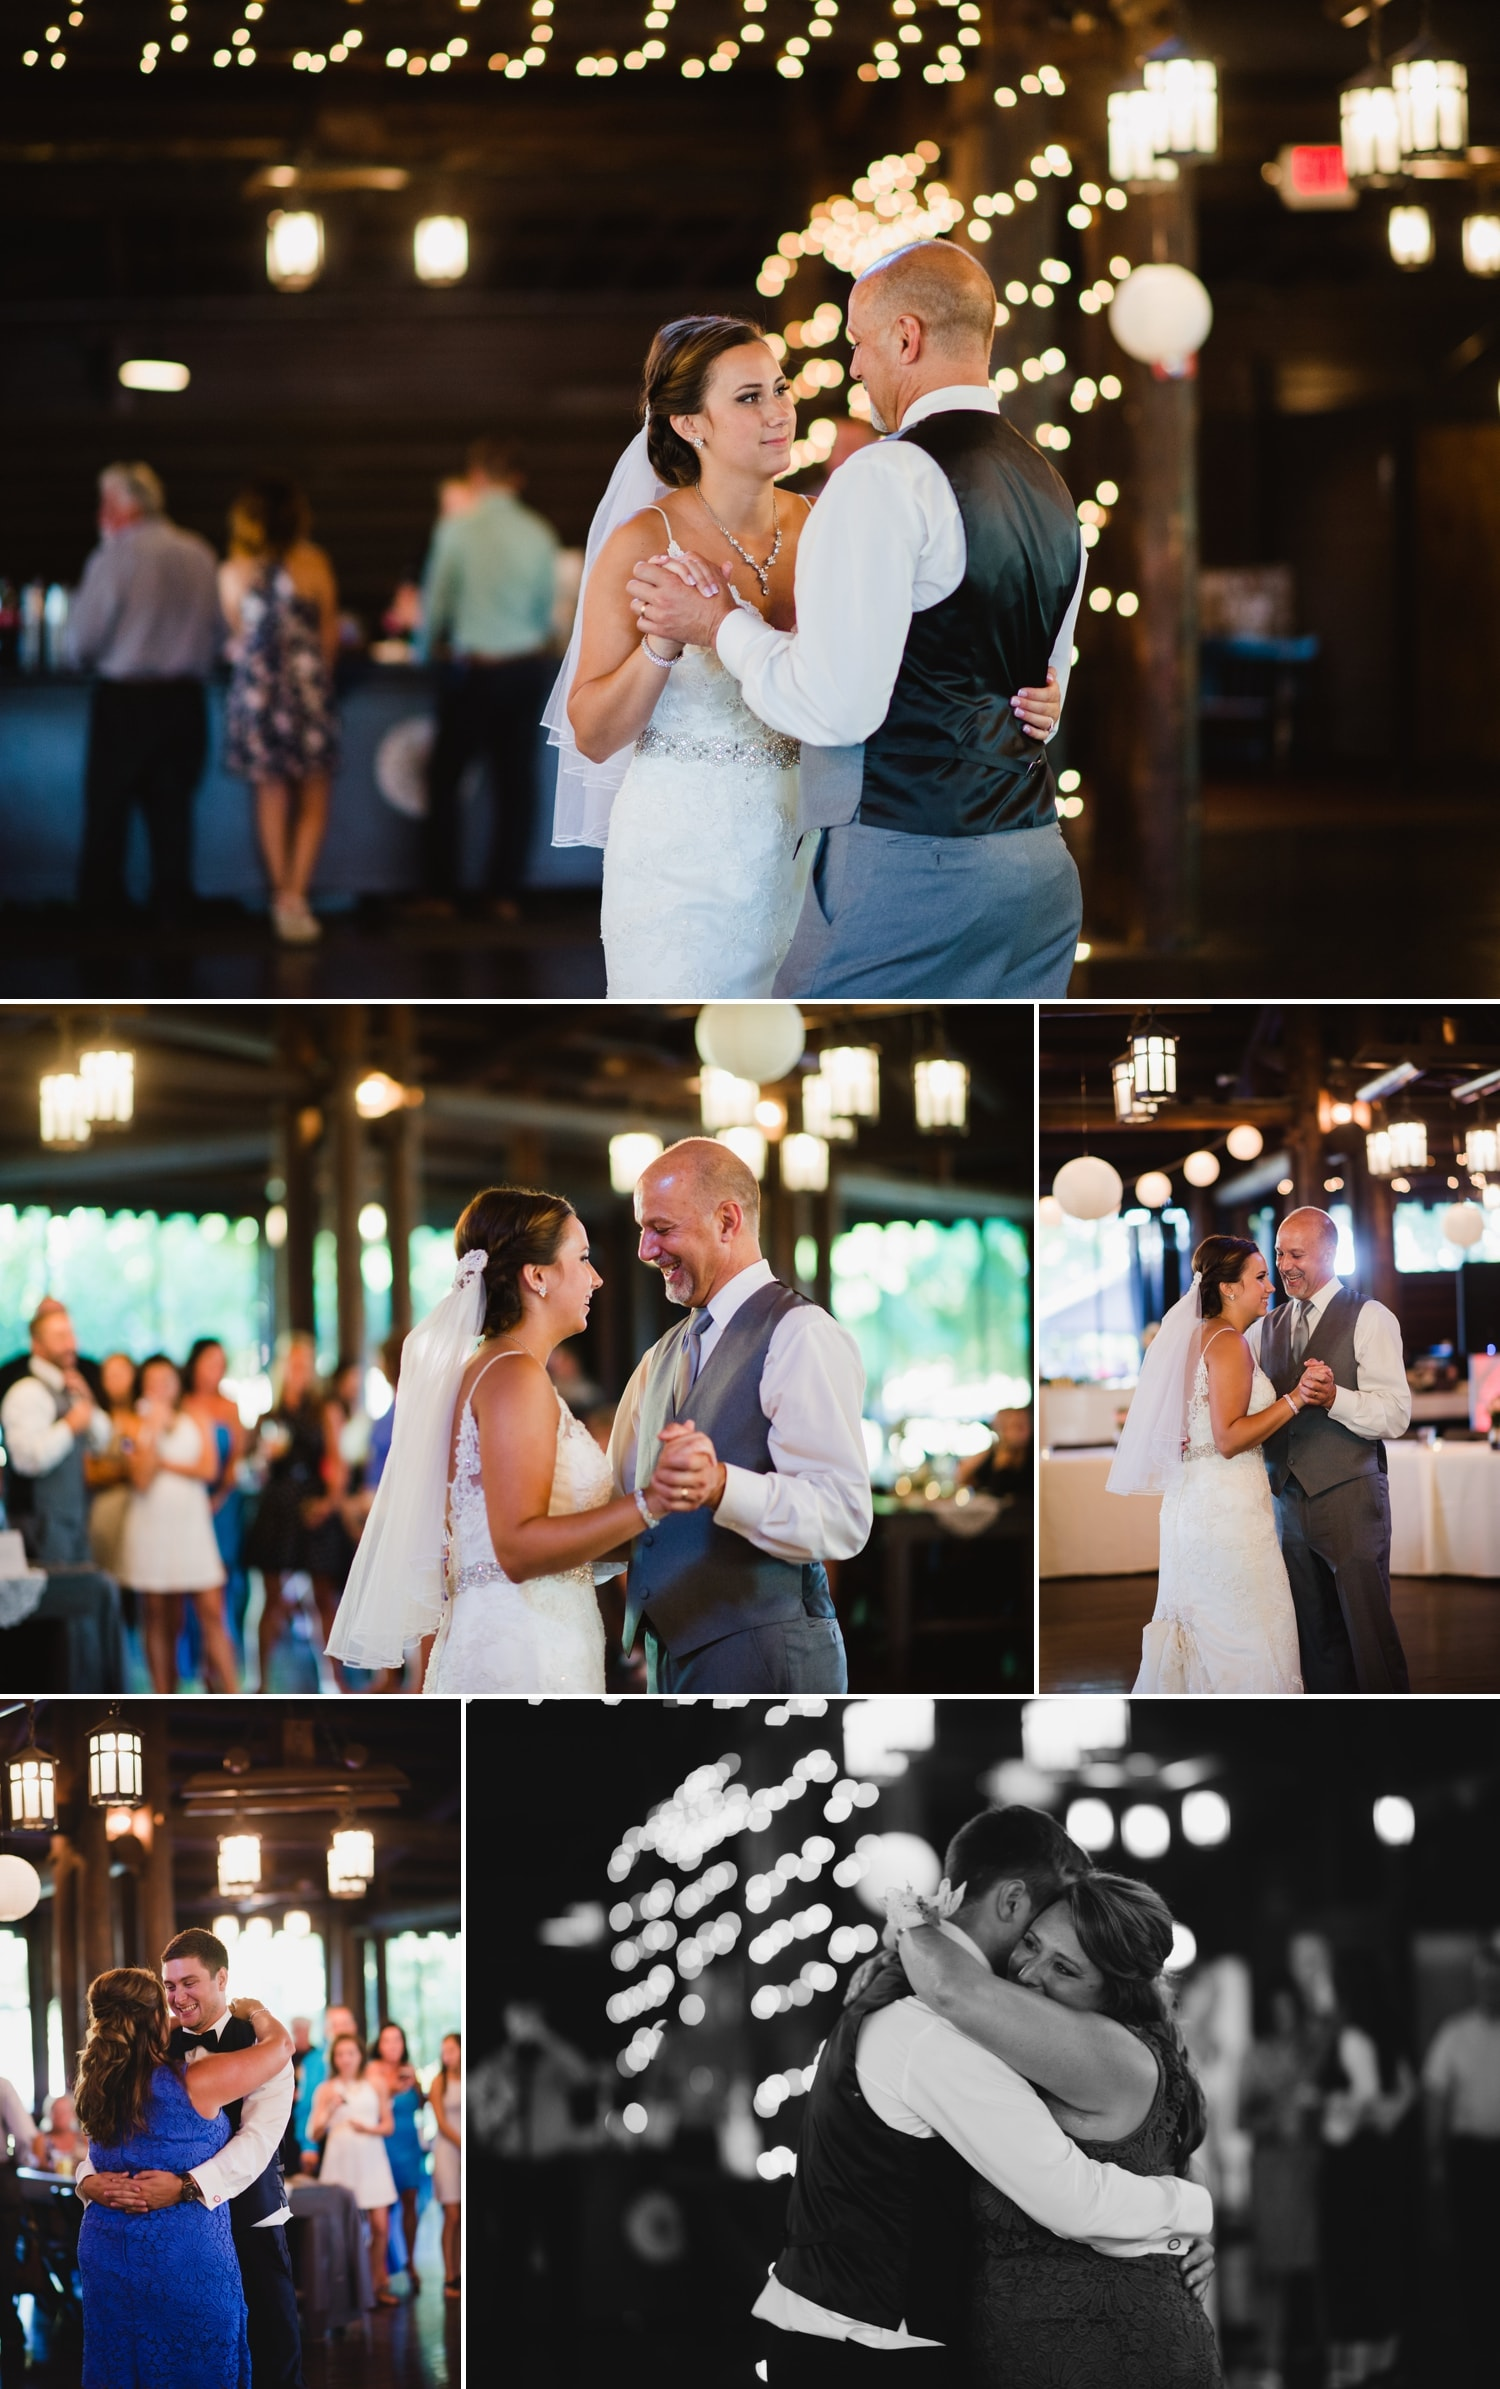 Heckman Wedding Blog 19.jpg